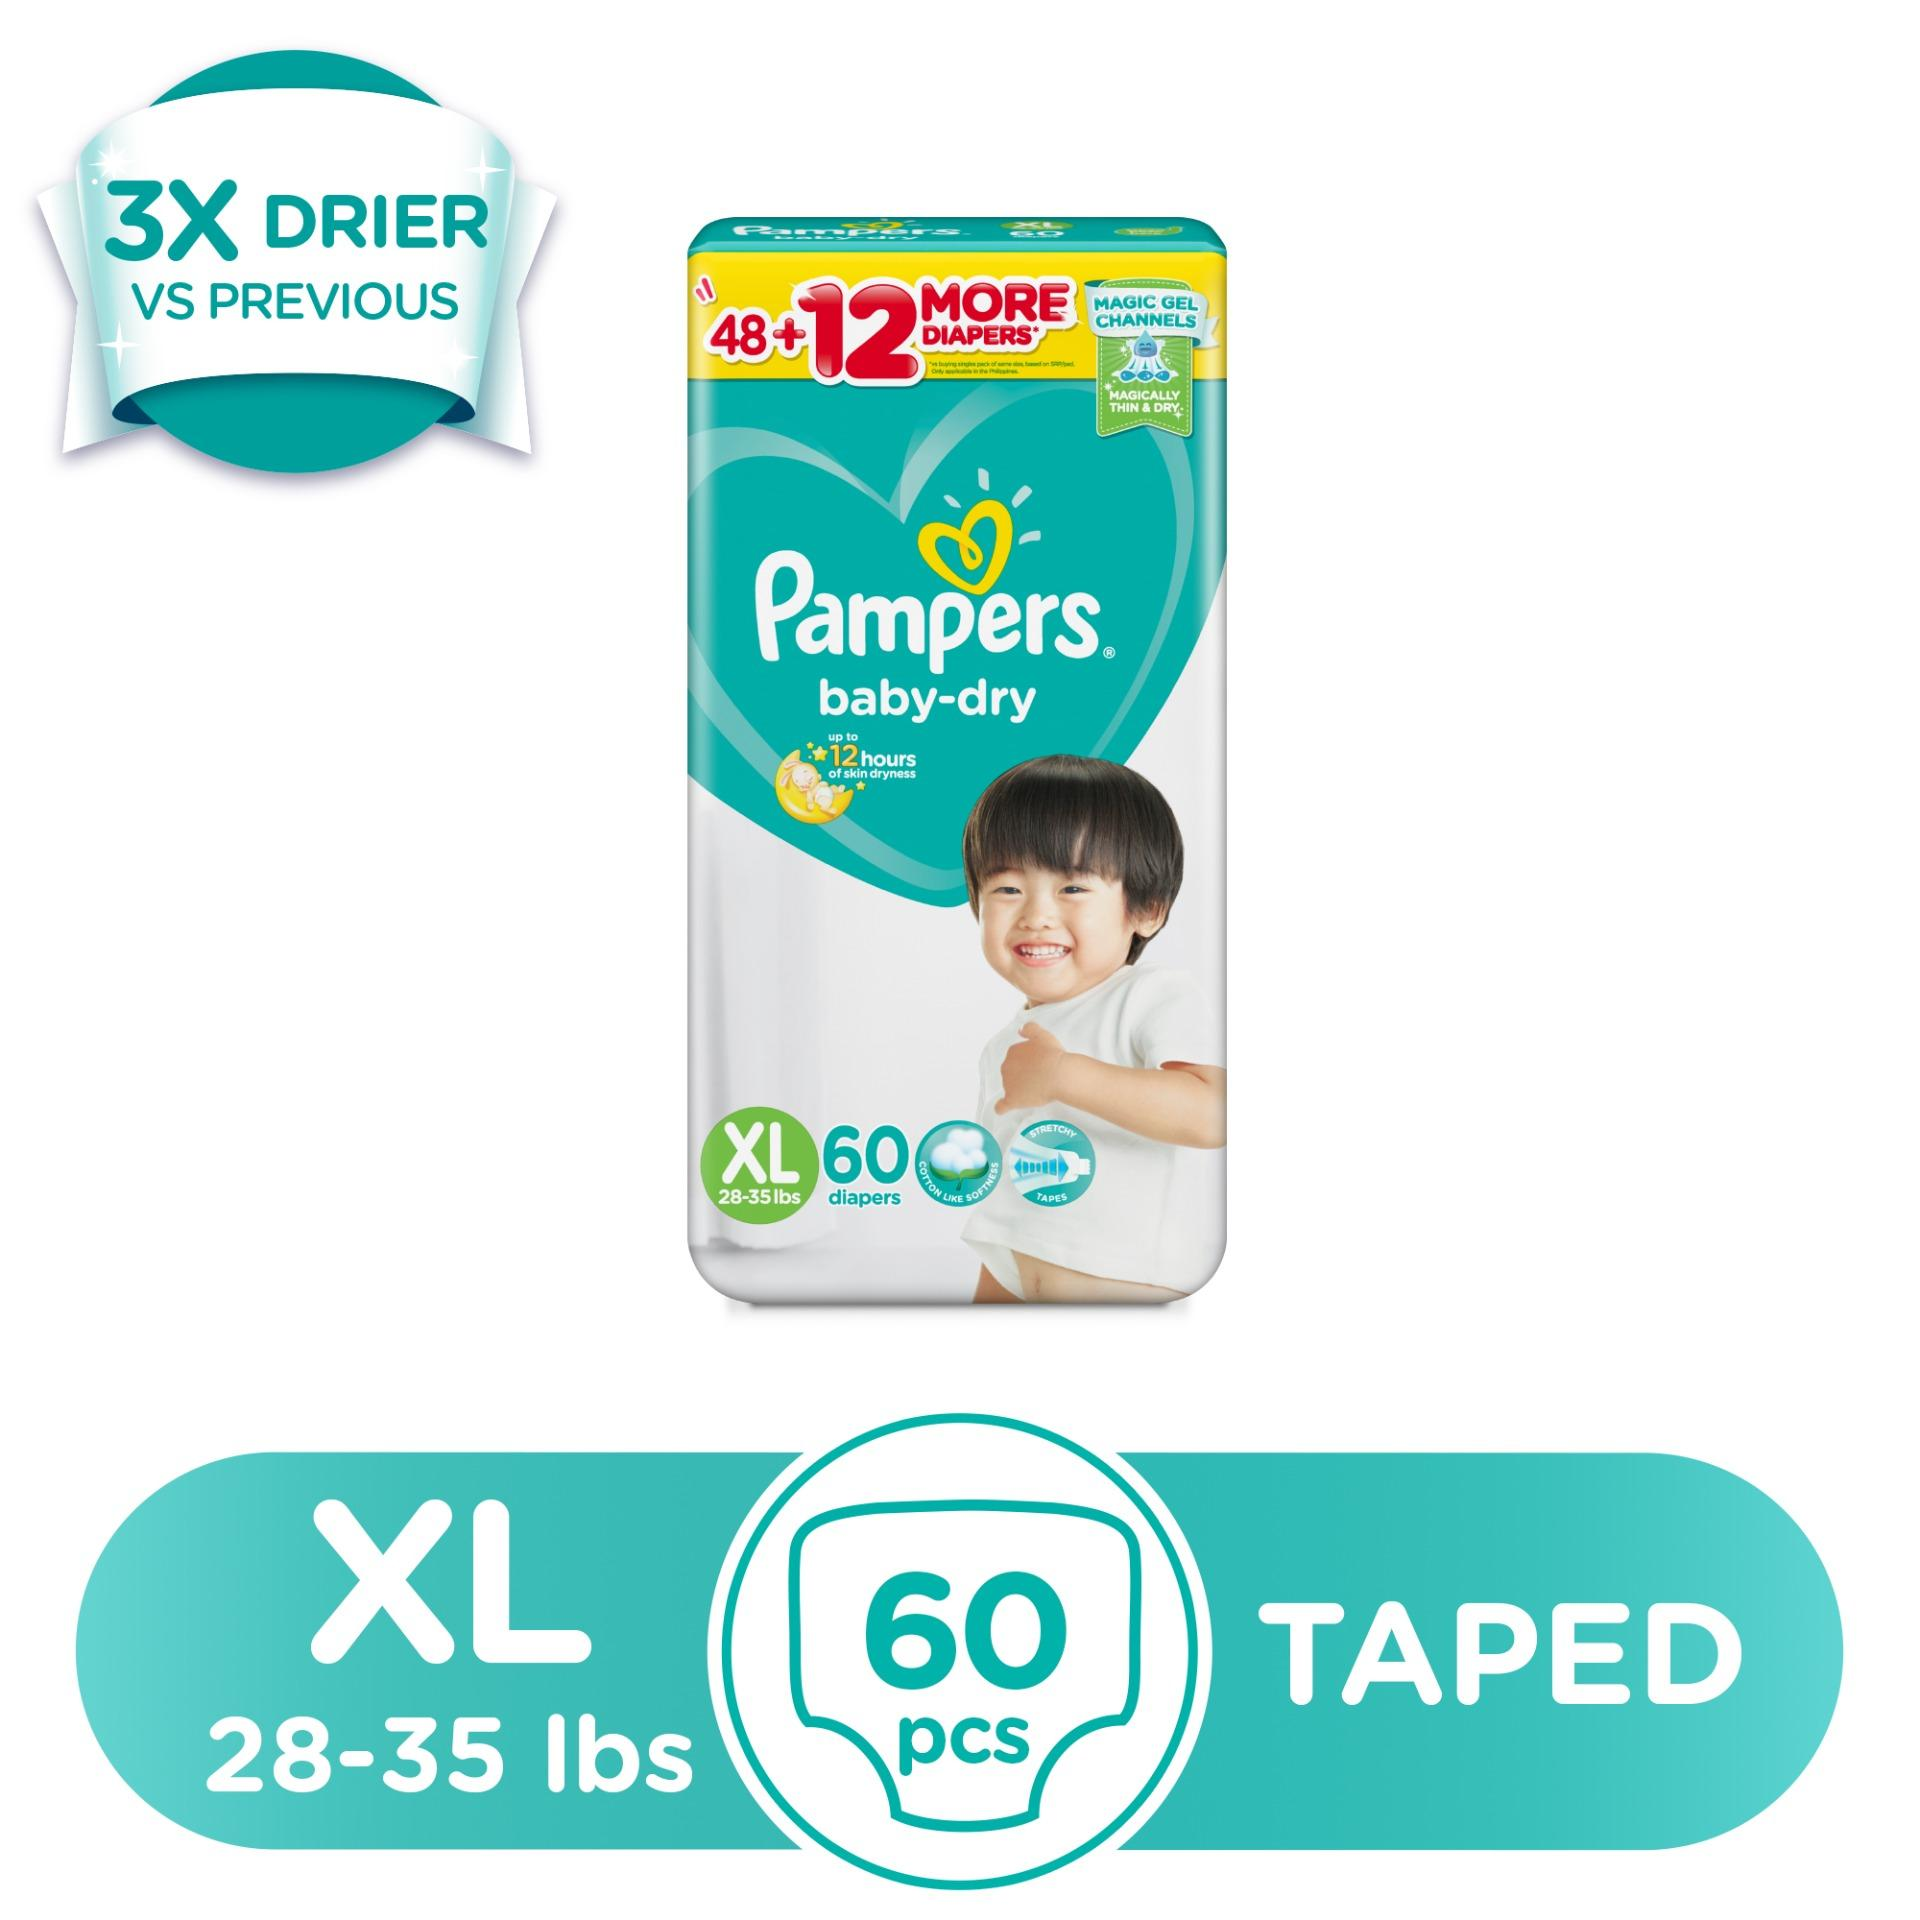 Pampers Baby Dry Extra Large (28-35 lbs) - 60 pcs x 1